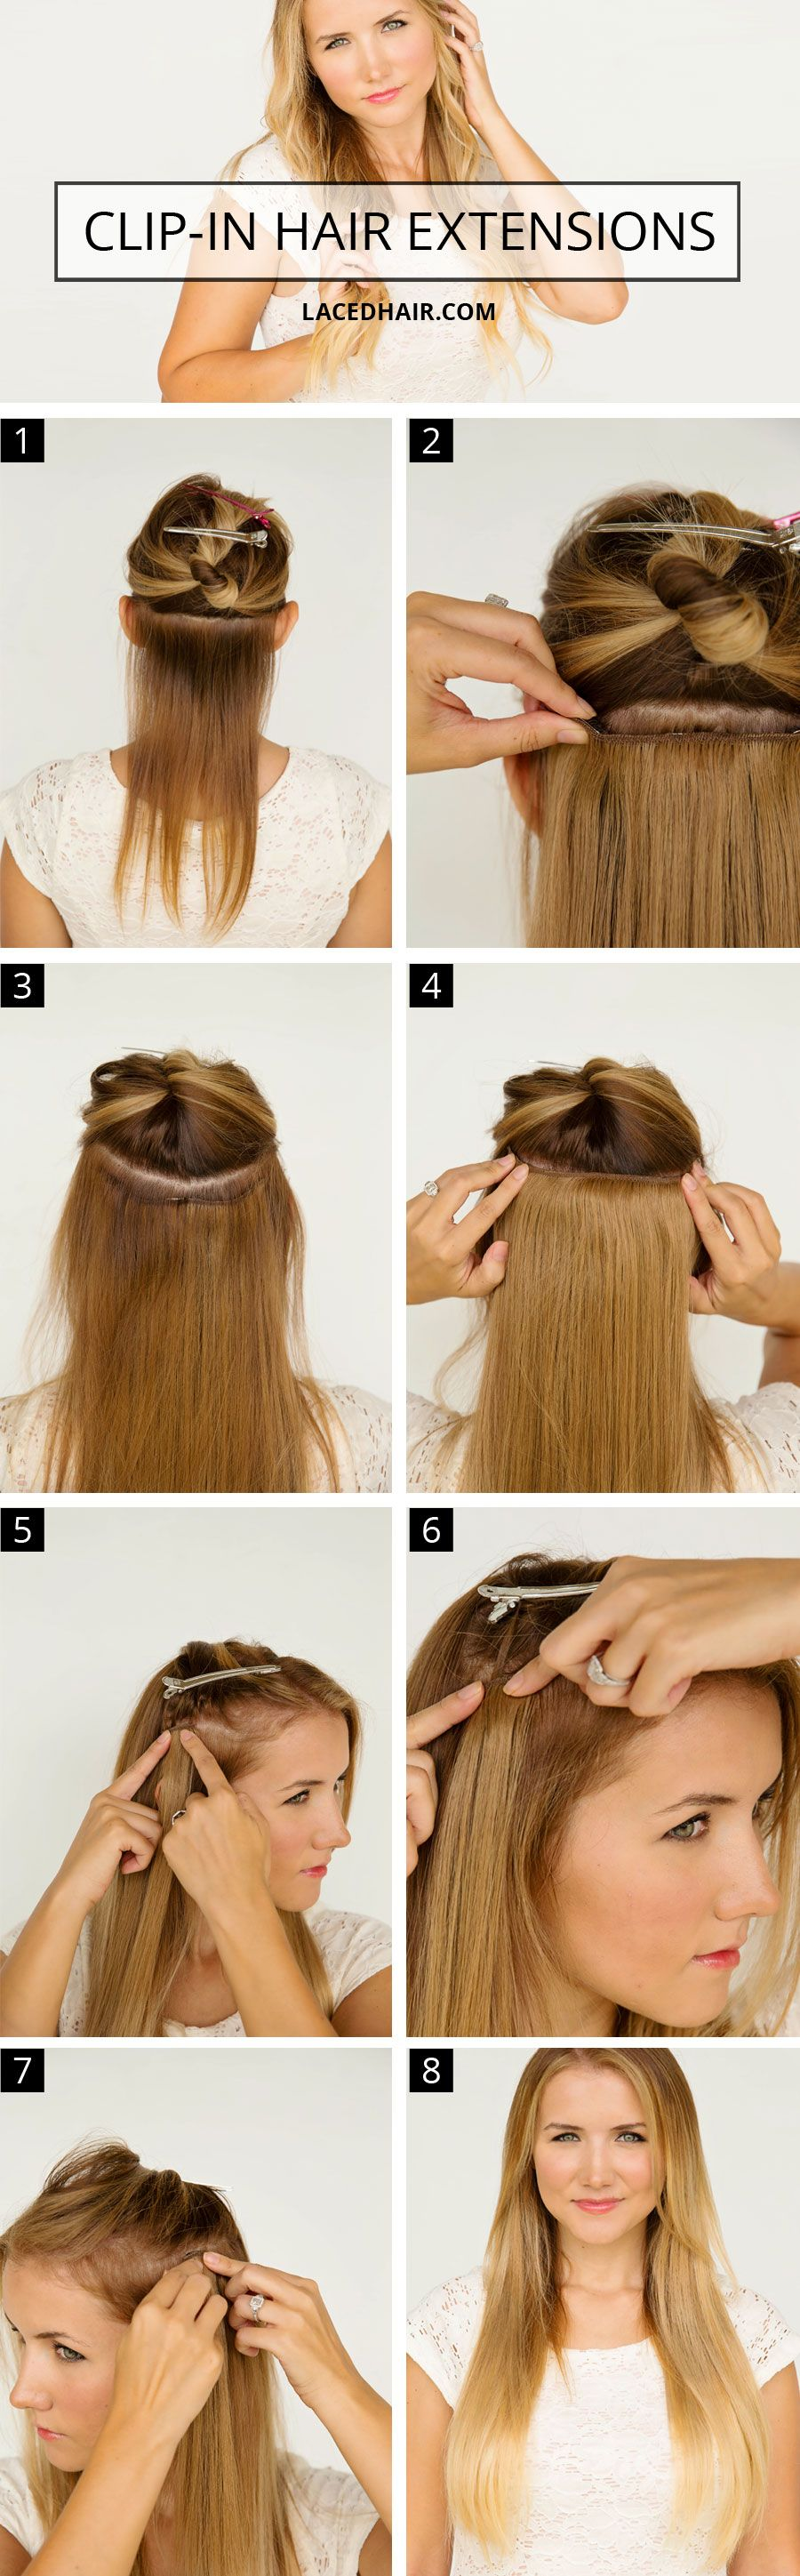 How To Wear Clip In Hair Extensions – Laced Hair